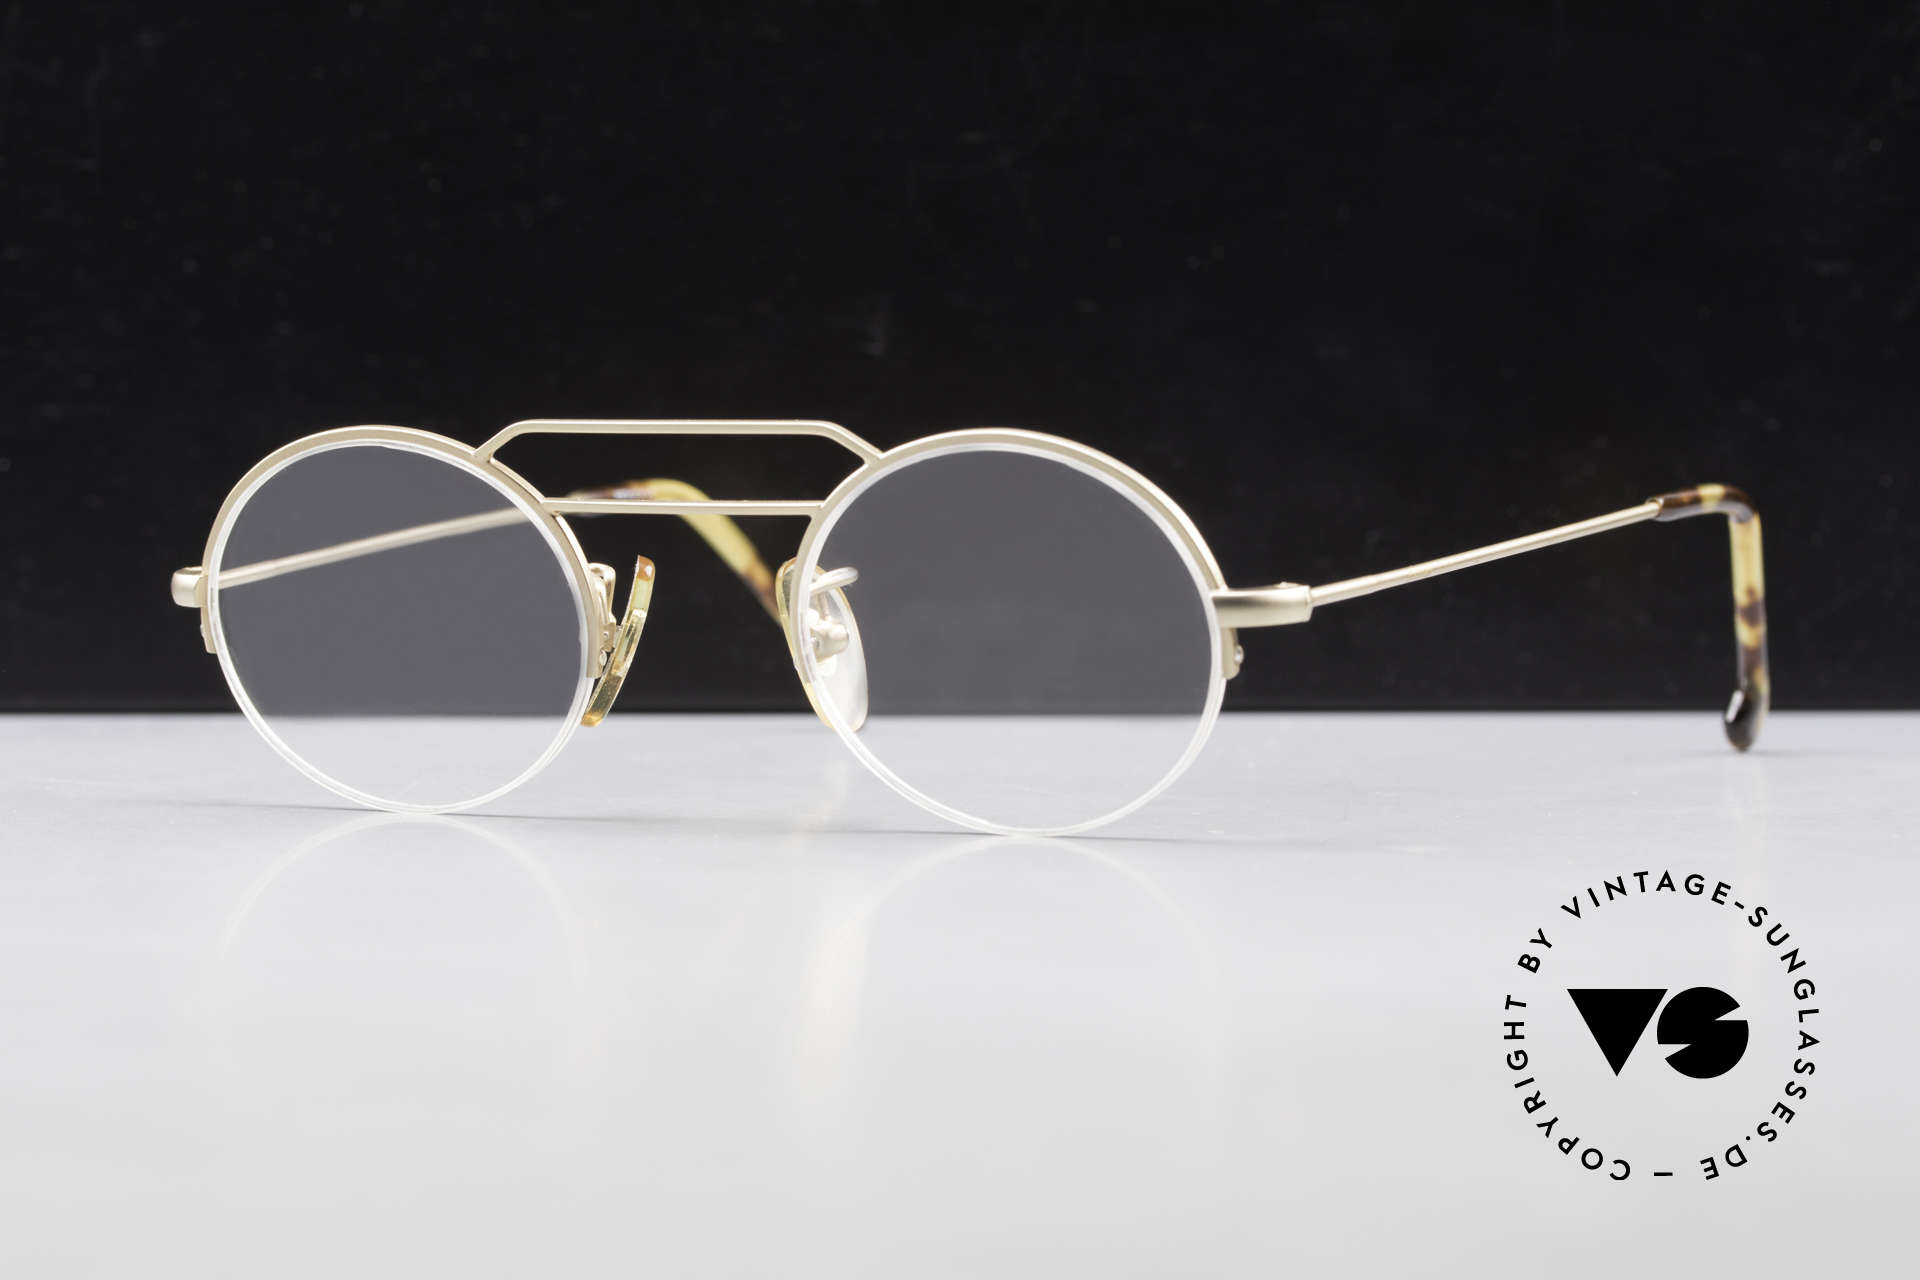 W Proksch's M5/13 90's Semi Rimless Dulled Gold, dulled GOLD Proksch's vintage glasses from 1994, Made for Men and Women